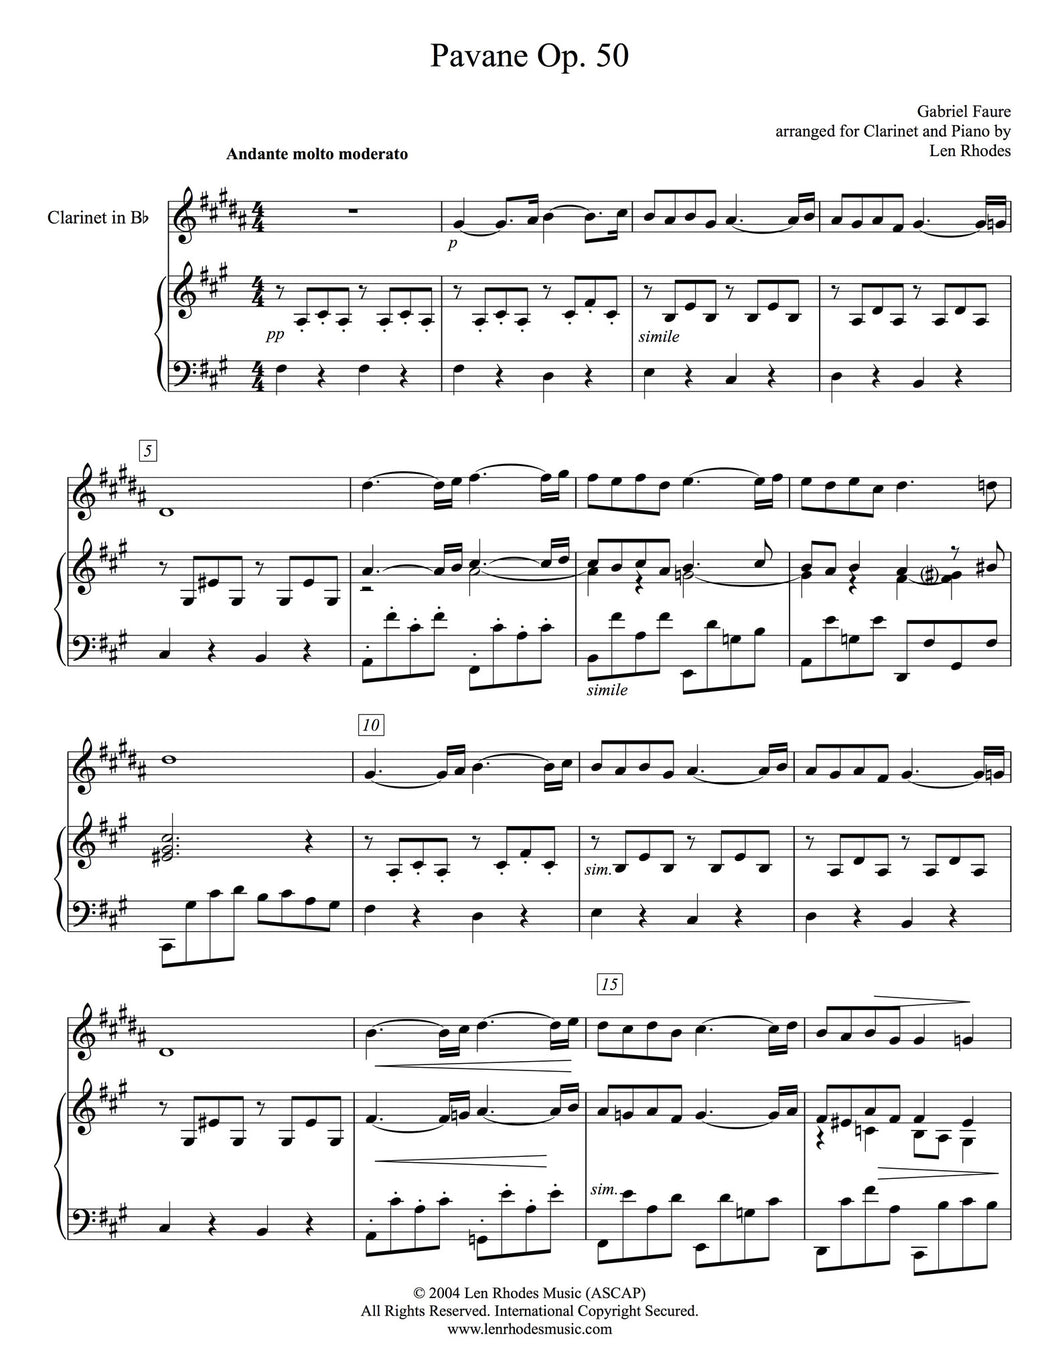 Fauré - Pavane, arranged for Clarinet and Piano